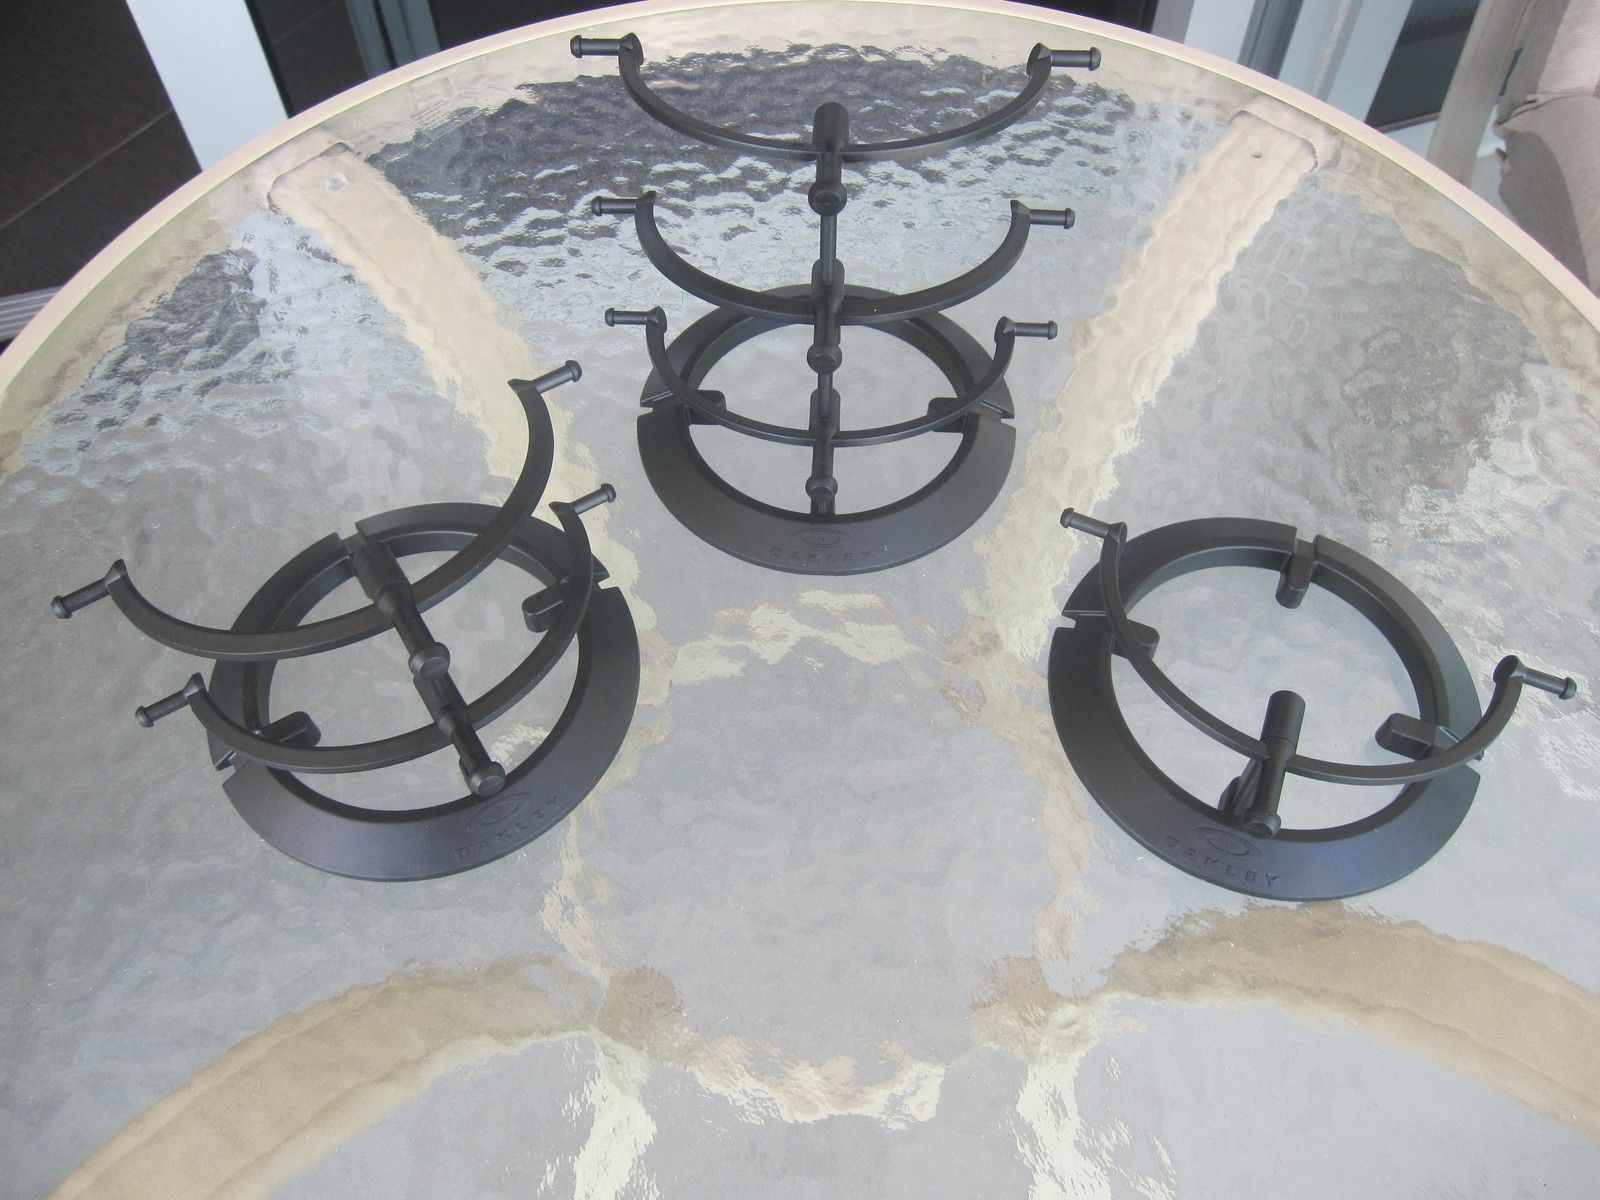 Display stands - black plastic - Priced to sell fast - All SOLD - IMG_2505.JPG